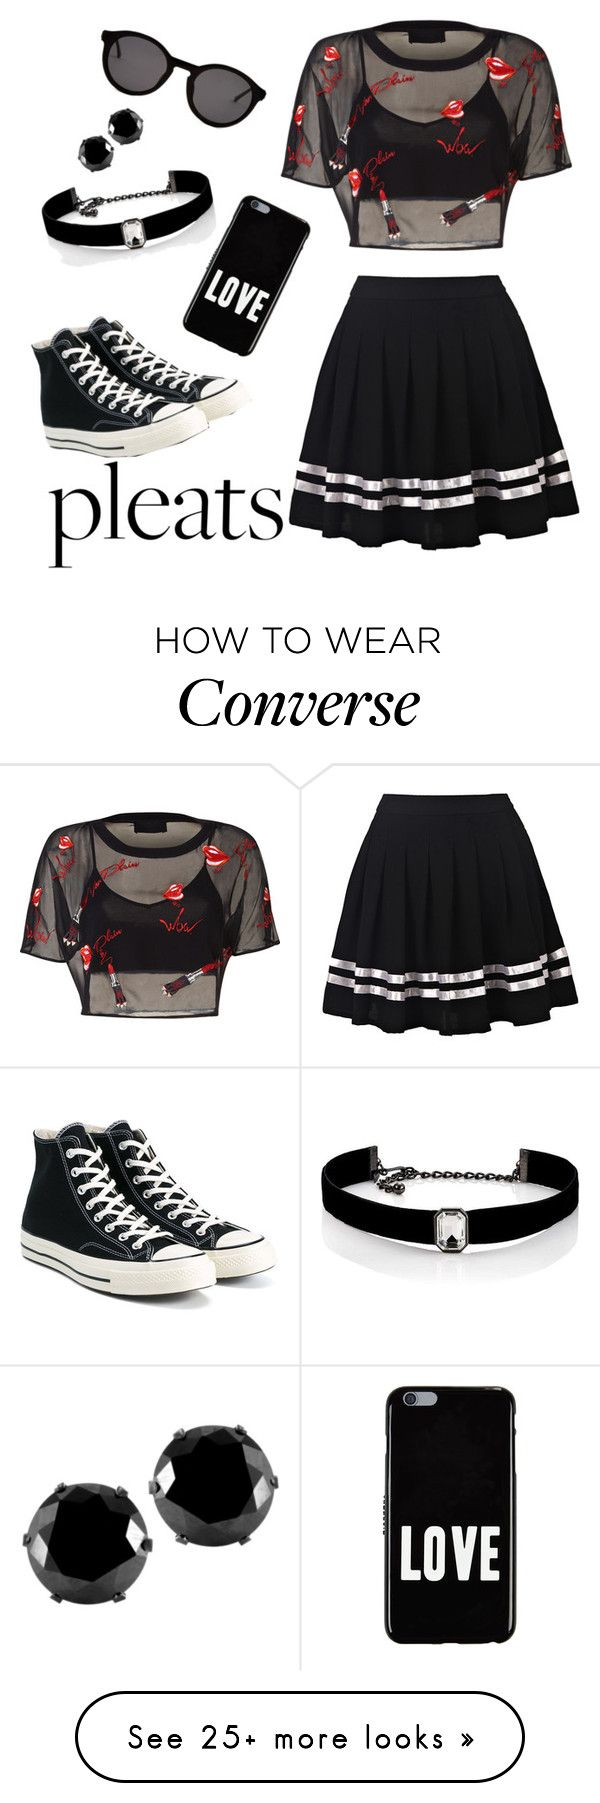 """Pleated skirt"" by chelcy2003 on Polyvore featuring Converse, Thierry Lasry, Givenchy, West Coast Jewelry and Kenneth Jay Lane"